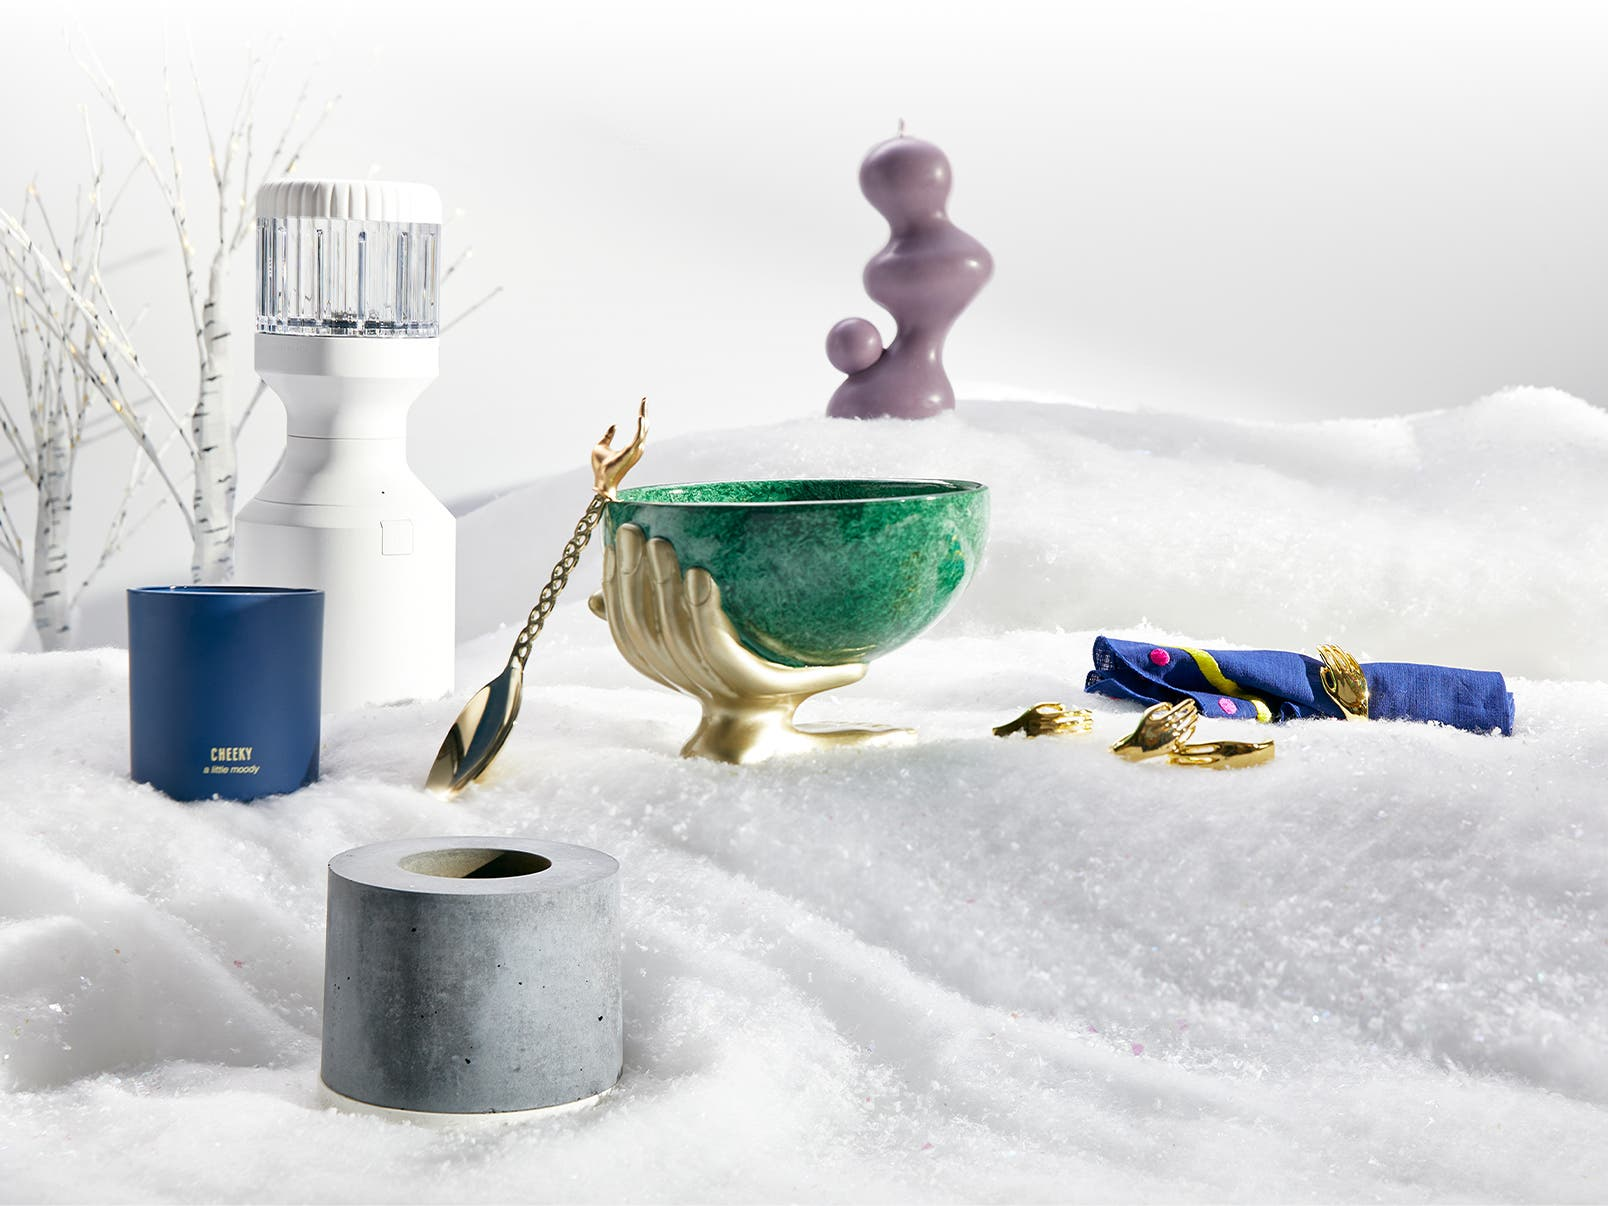 Hashtag Nordstrom Pop. A selection of gifts in the snow including a purple sculptural candle, scented candle, sleek blender; and a green bowl and serving spoon adorned with a golden hand.